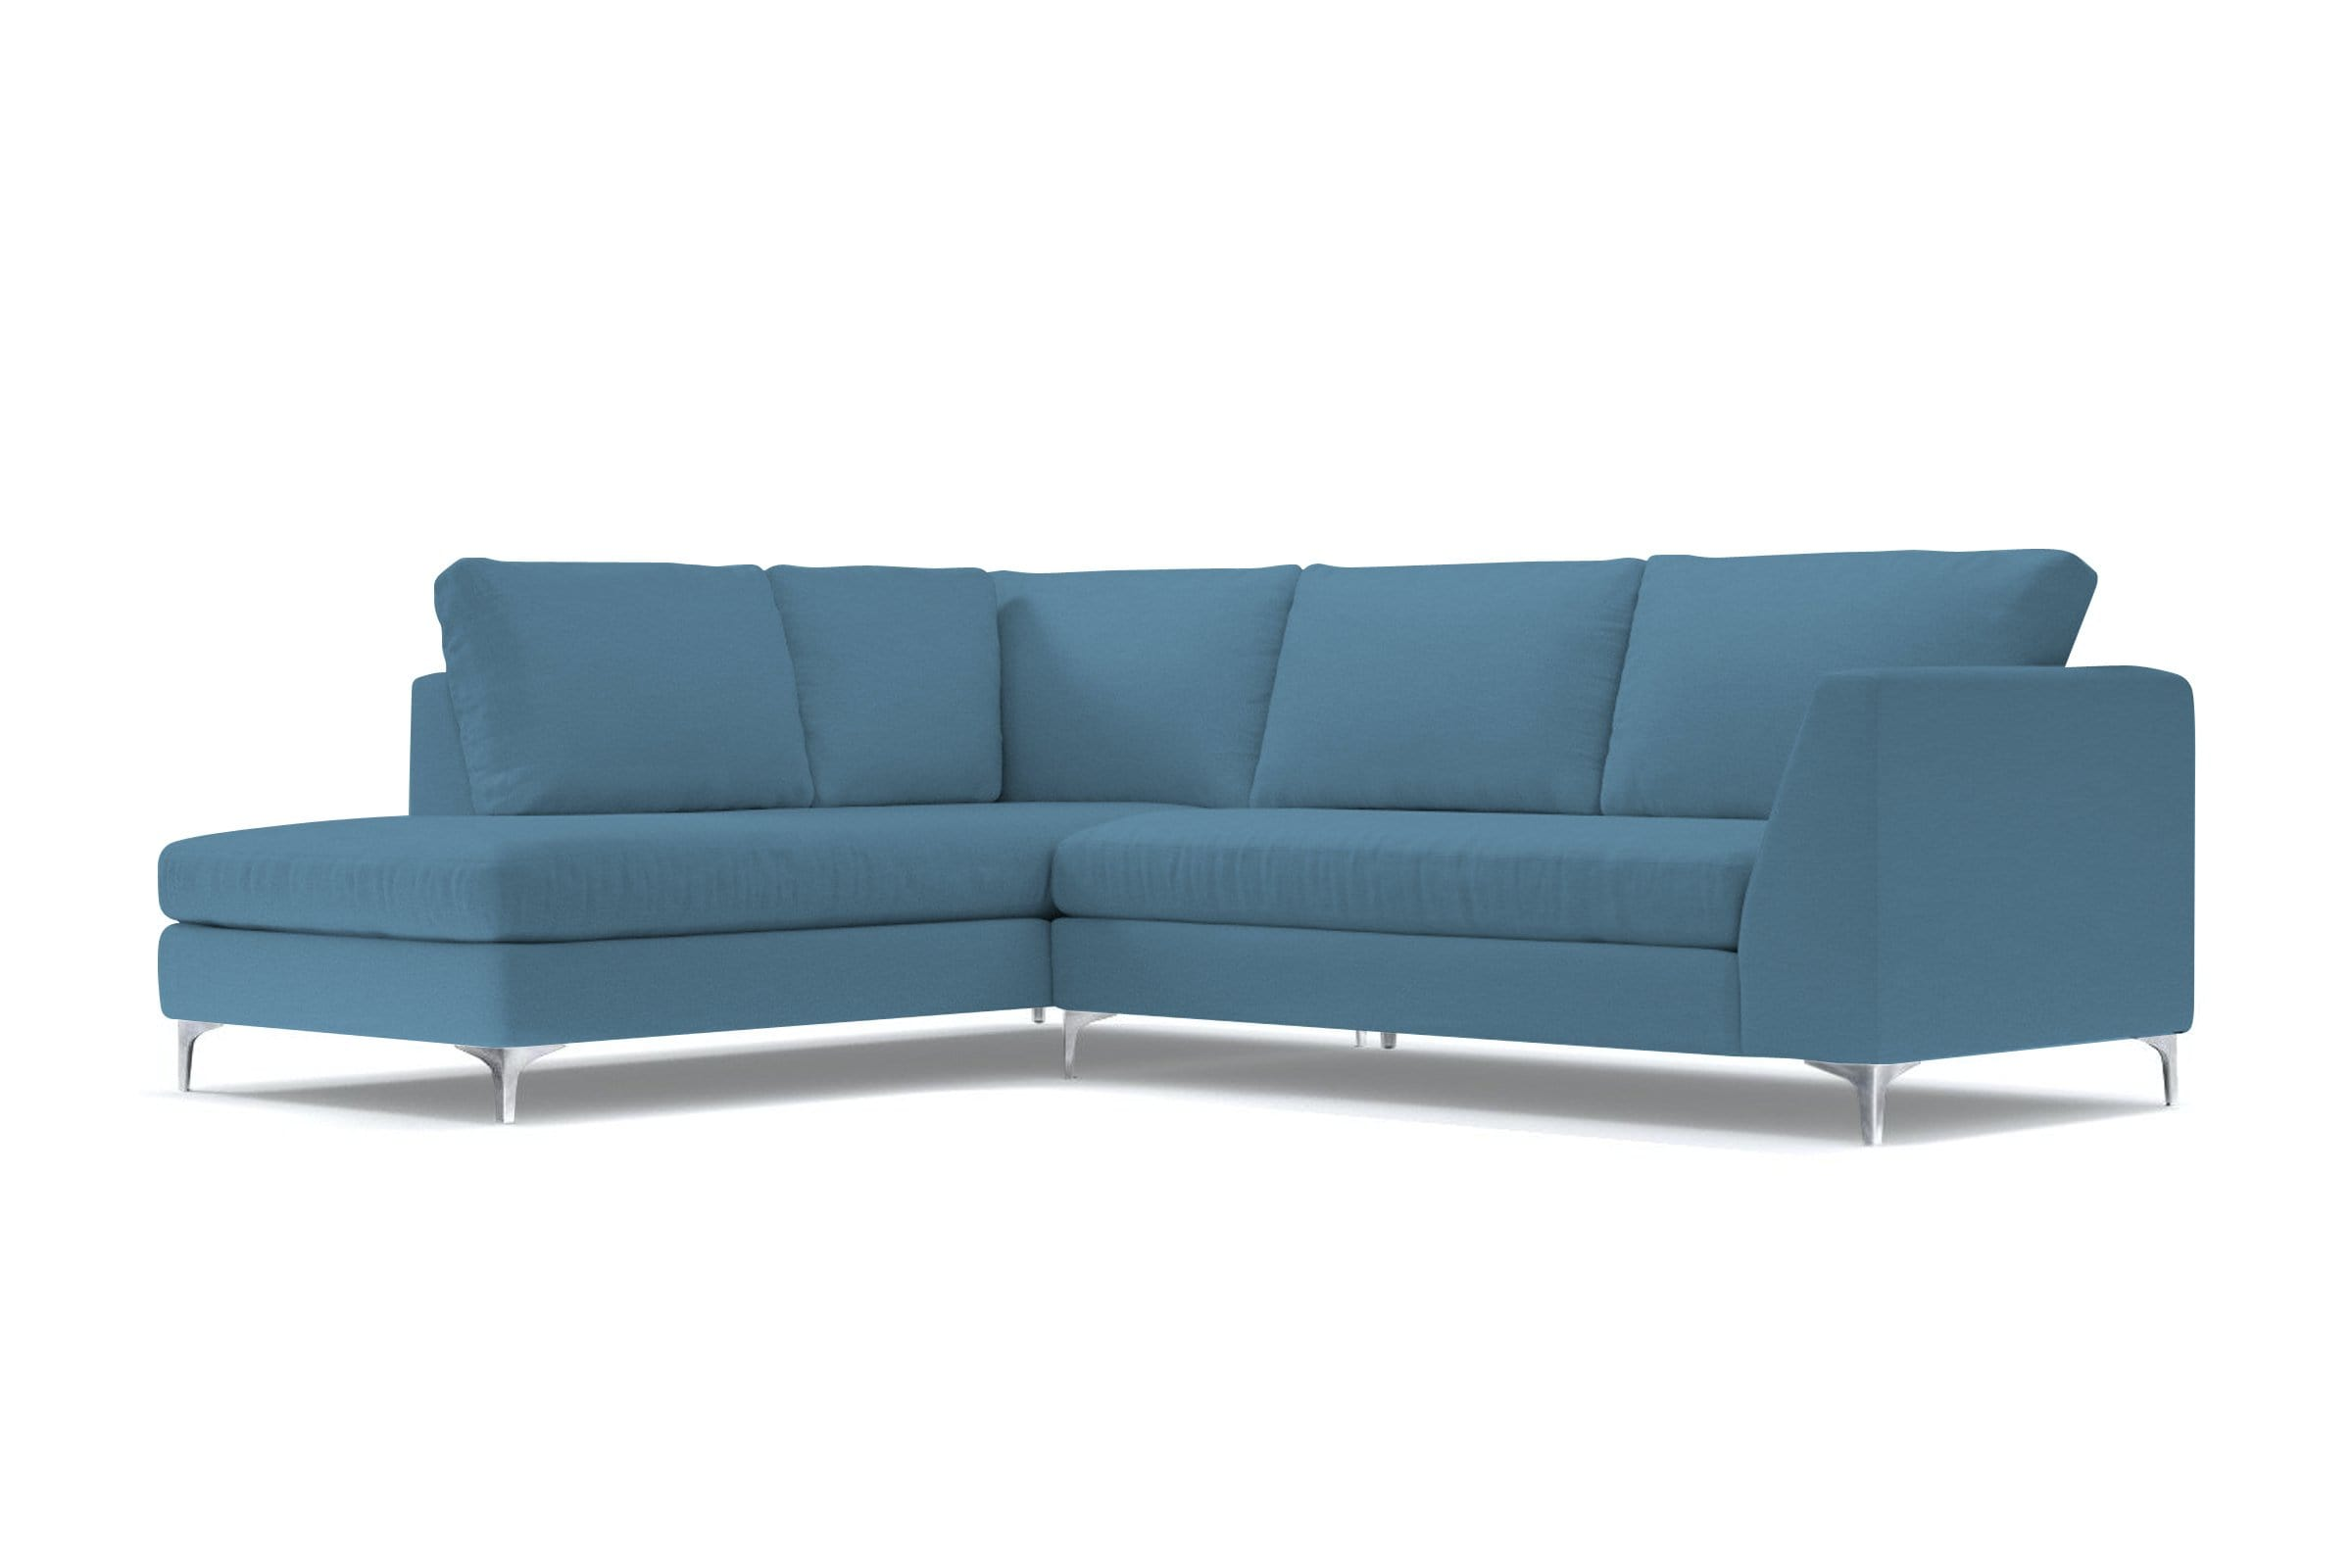 Mulholland 2pc Sectional Sofa - Grey - Modern Sectional Sofa Made in USA - Sold by Apt2B